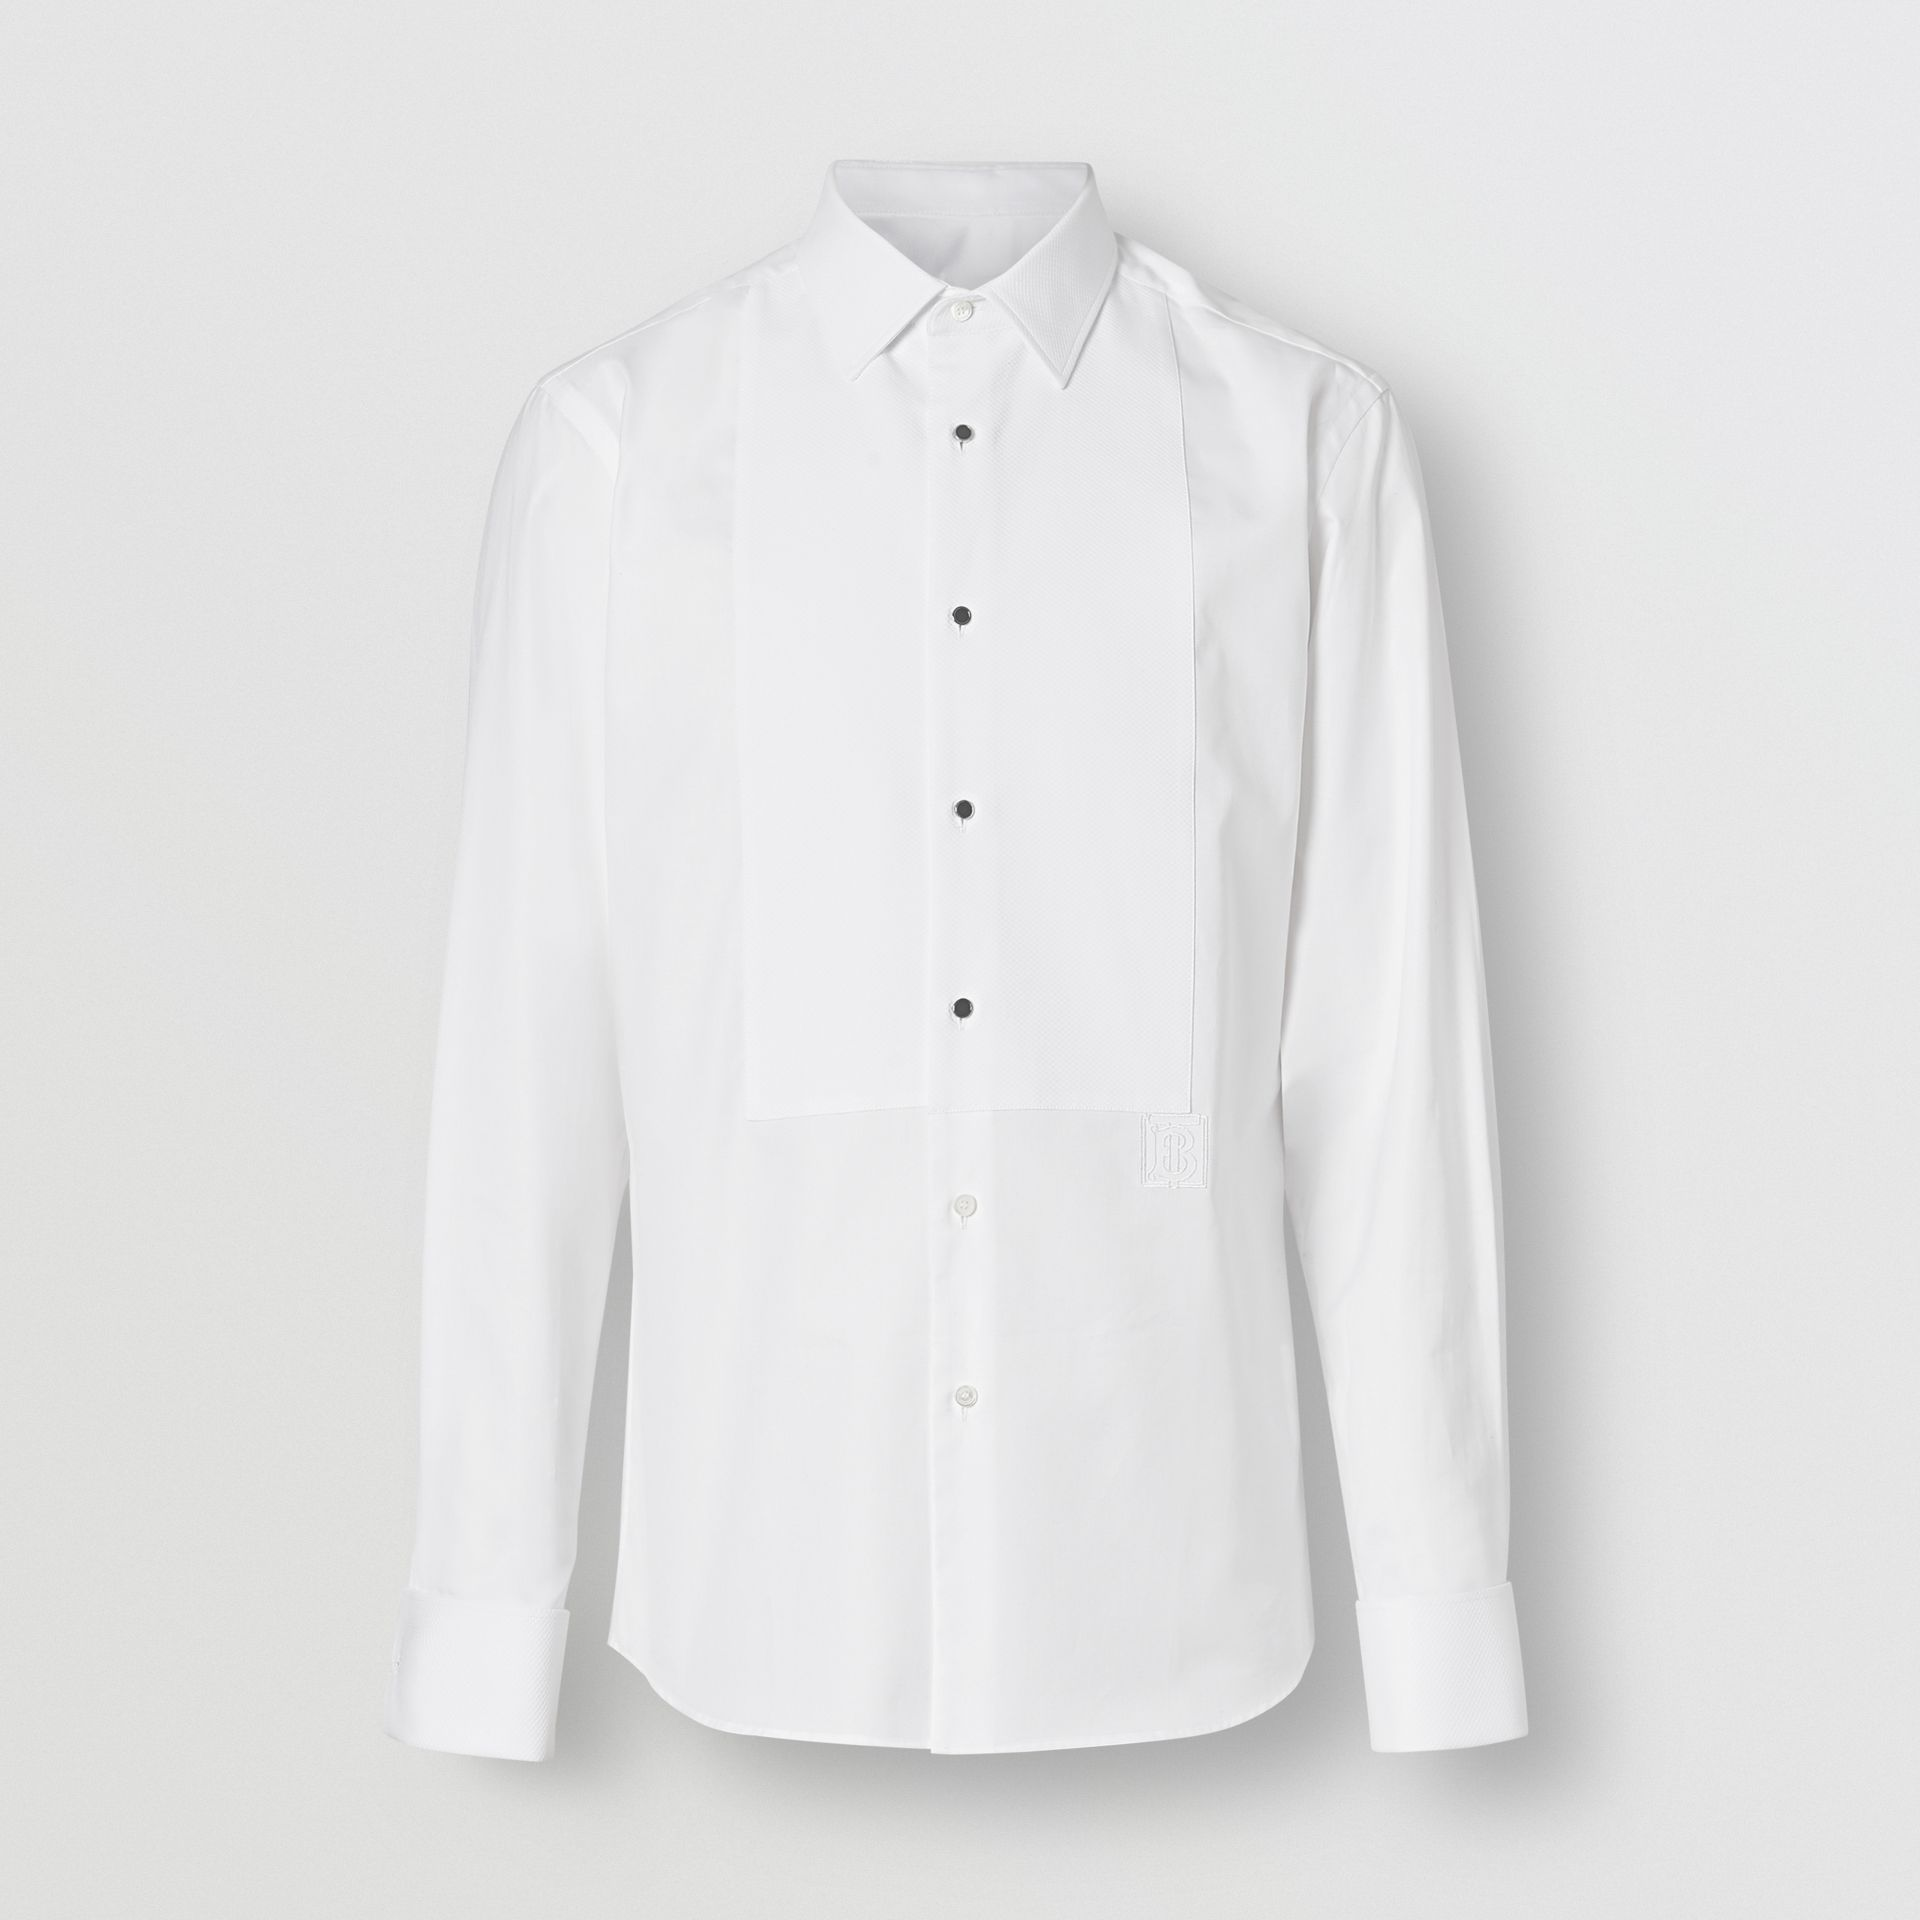 Panelled Bib Cotton Oxford Dress Shirt in White - Men | Burberry Singapore - gallery image 3